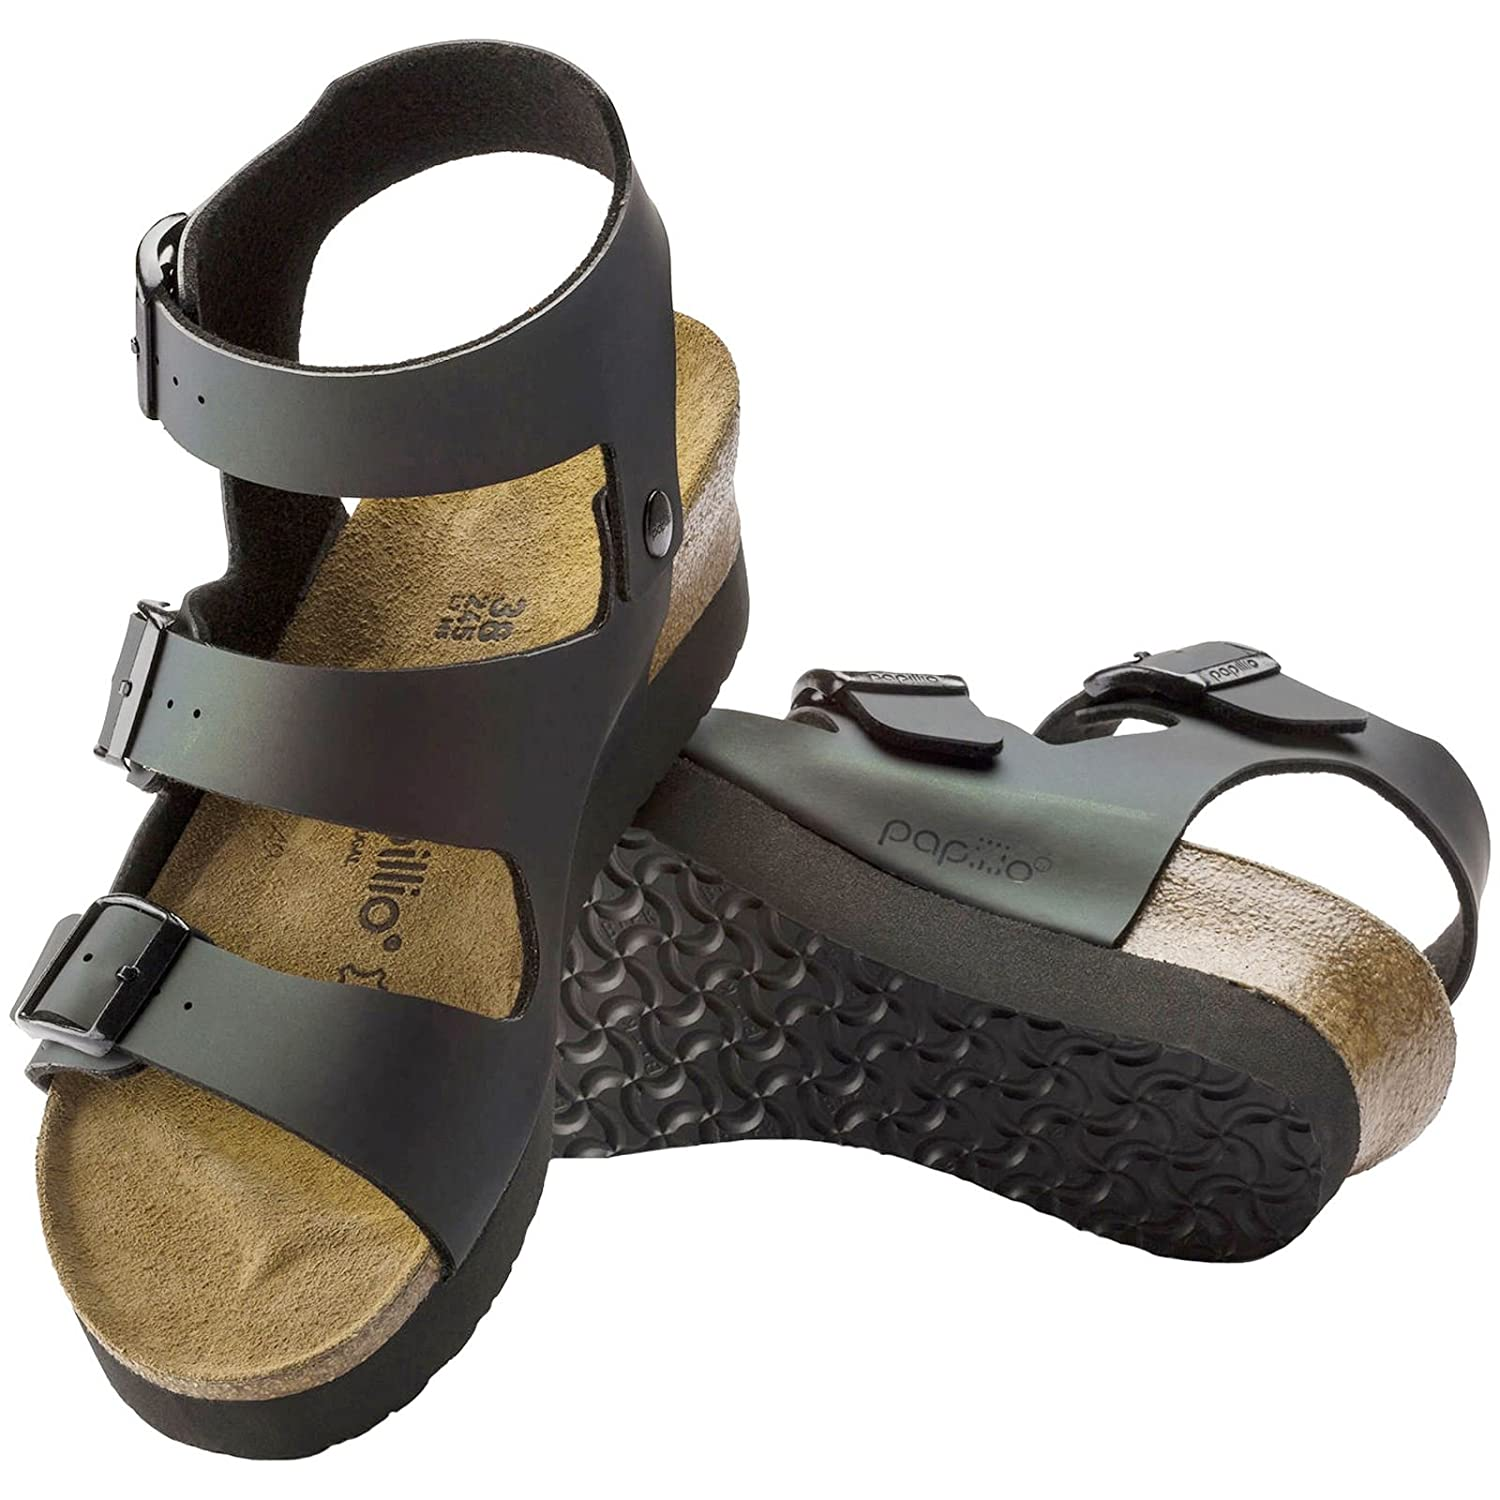 4bb5aa17578b Papillio Womens by Birkenstock Linnea Iridescent Black Birko-Flor Sandals  38 EU  Amazon.co.uk  Shoes   Bags